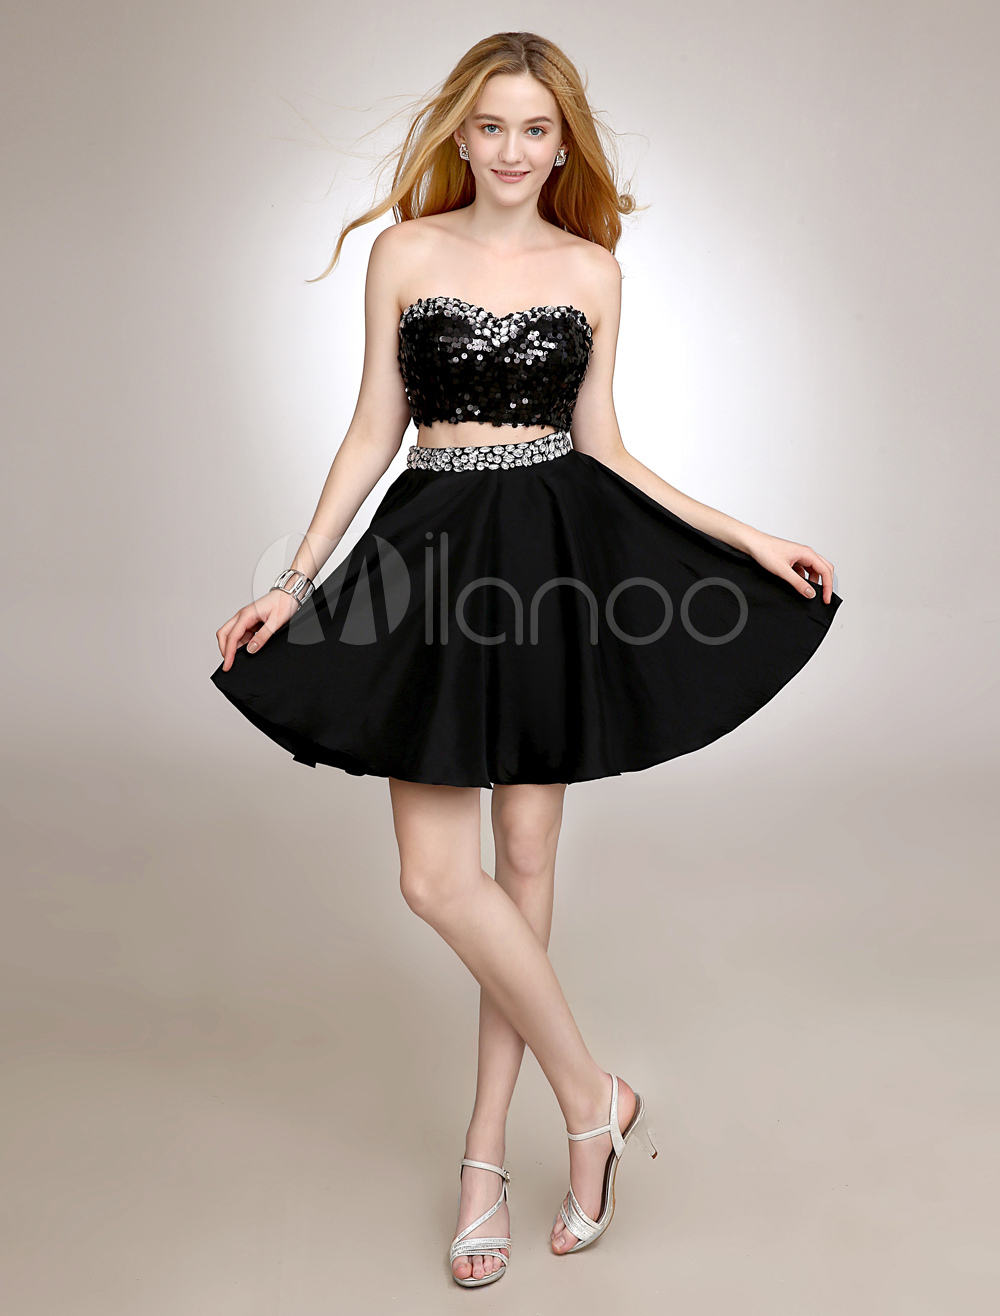 Black Short Homecoming Dress With Sequins (Wedding Cheap Party Dress) photo